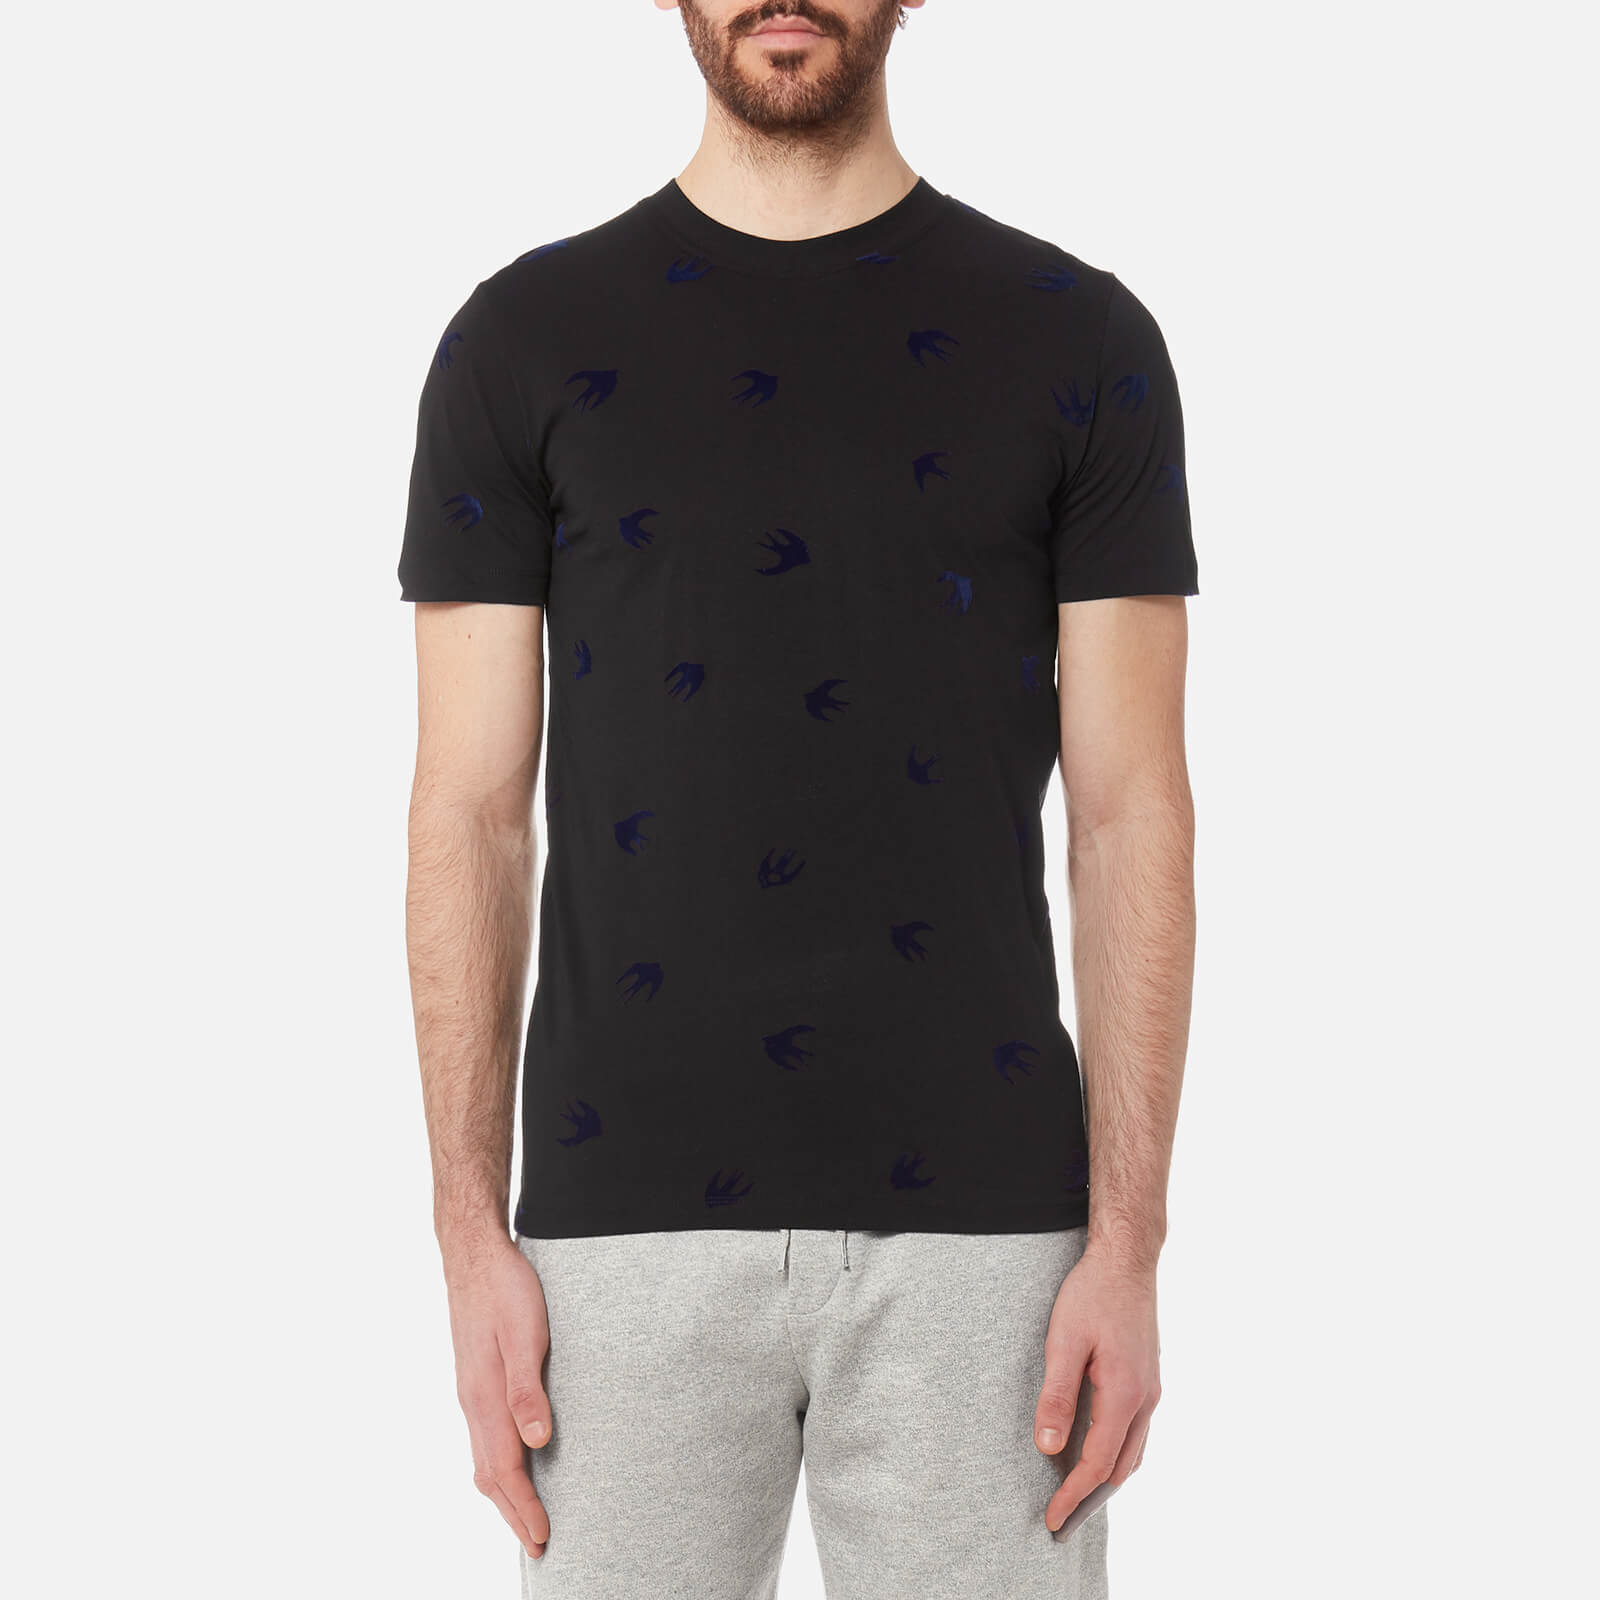 e3bb47c27 McQ Alexander McQueen Men's Flock Swallow T-Shirt - Black/Carbon Navy -  Free UK Delivery over £50